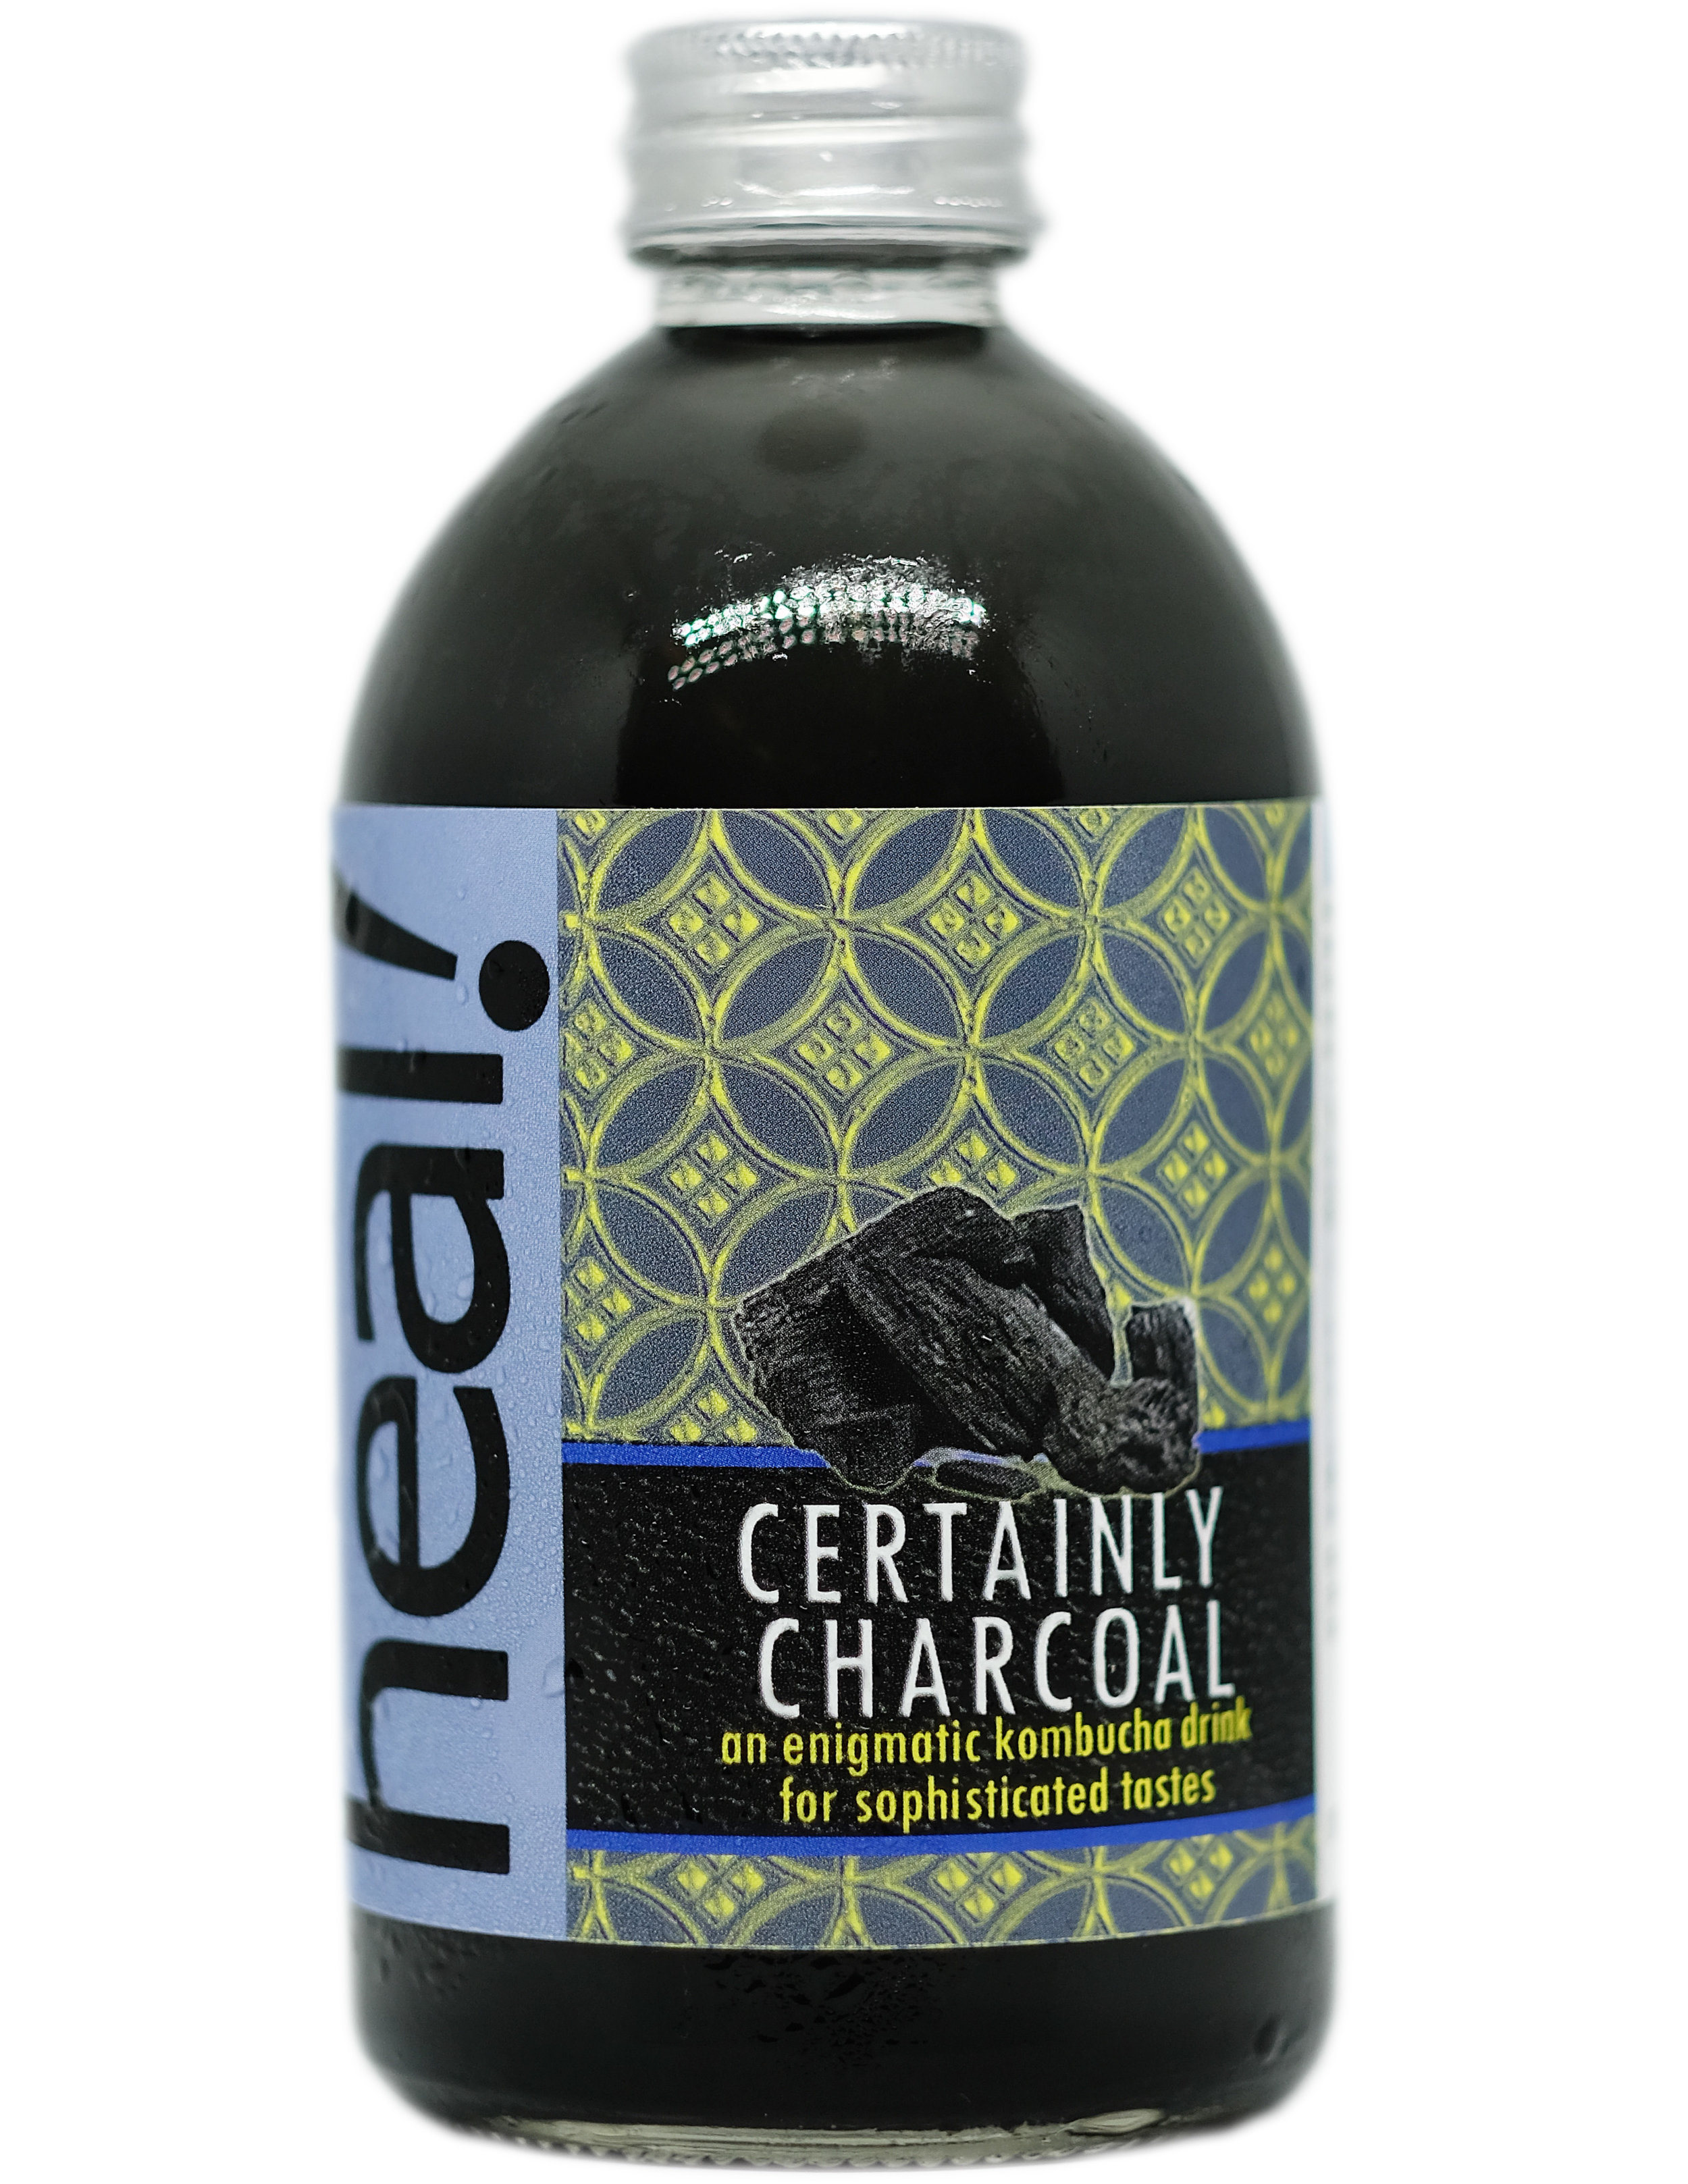 Since ancient time, charcoal has been viewed as an antidote. Now we know that it has myriads of benefits, among others as natural treatment for lowering cholesterol, detoxifying body, treating cases of poisoning or drug overdose.  In culinary world, no wonder that charcoal is now all the rage.  This drink blends highest-grade activated charcoal with mighty live probiotics from kombucha (fermented tea). Since charcoal adds almost no taste, this drink tastes pure and simple, with a tang and effervescent qualities that are quite refreshing.  Ingredients: Mineral Water, Kombucha Cultures, Java Oolong Tea, Natural Cane Sugar, Food-grade, highest-grade activated charcoal  Calorie 40, Sugar 3 grams per 175 ml before second fermentation, by which process reduces calorie and sugar content further and create fizz.  Packaged in 100% recyclable, reusable,  refundable  glass bottle, 370 ml.  RECIPE  click here   CONTACT US  click here